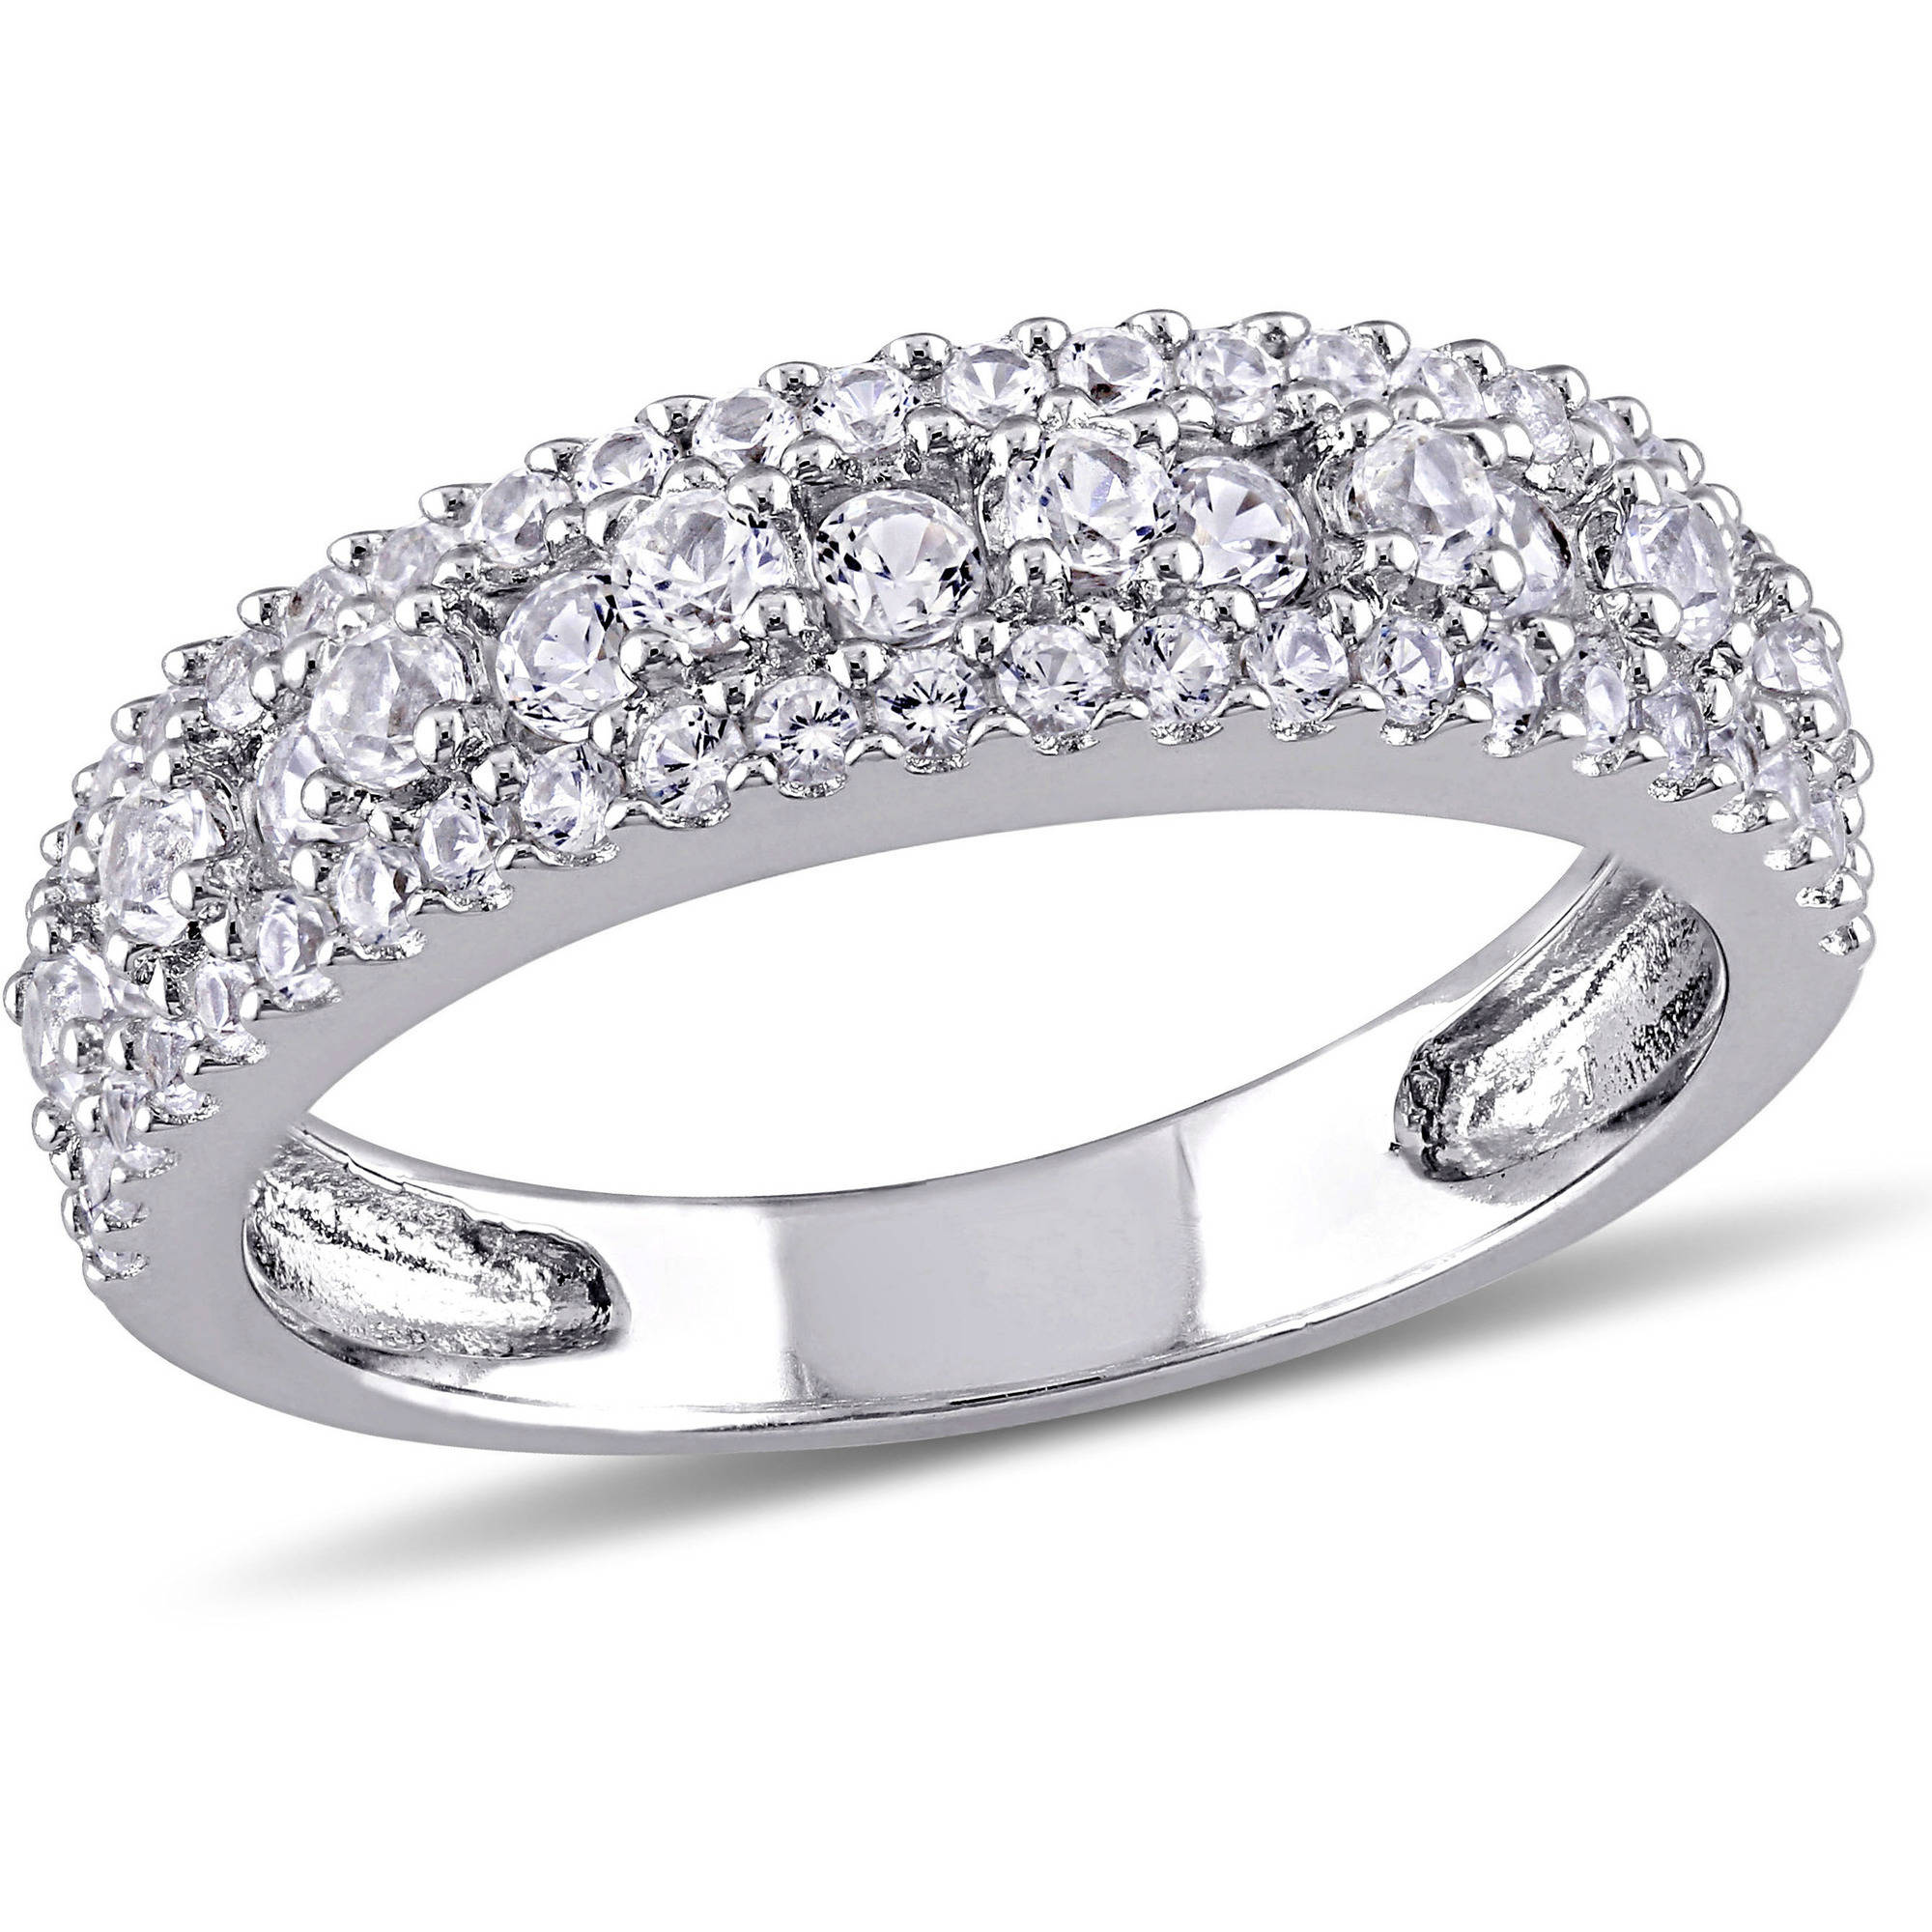 Miabella 1-1/7 Carat T.G.W. Created White Sapphire Sterling Silver Anniversary Ring